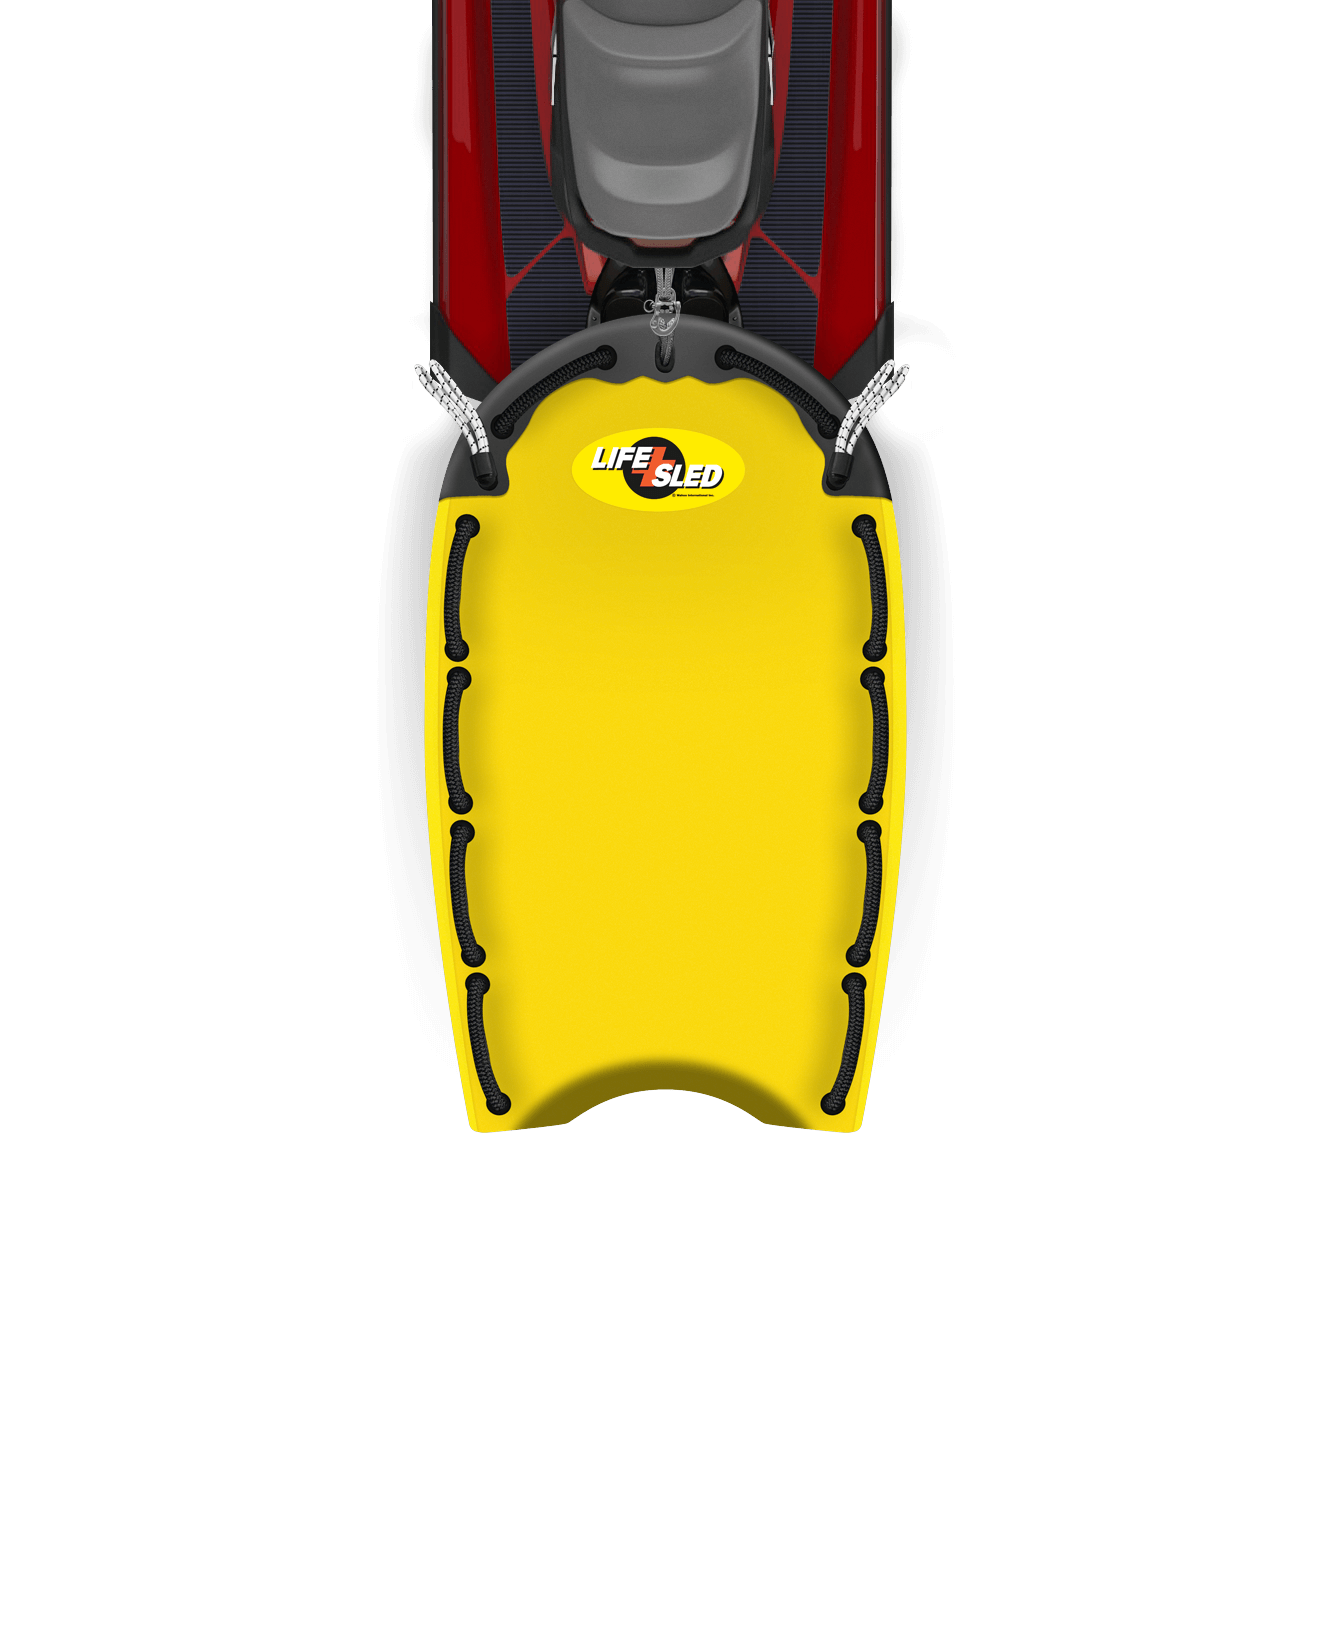 LifeSled | Trusted worldwide by Big Wave Riders and